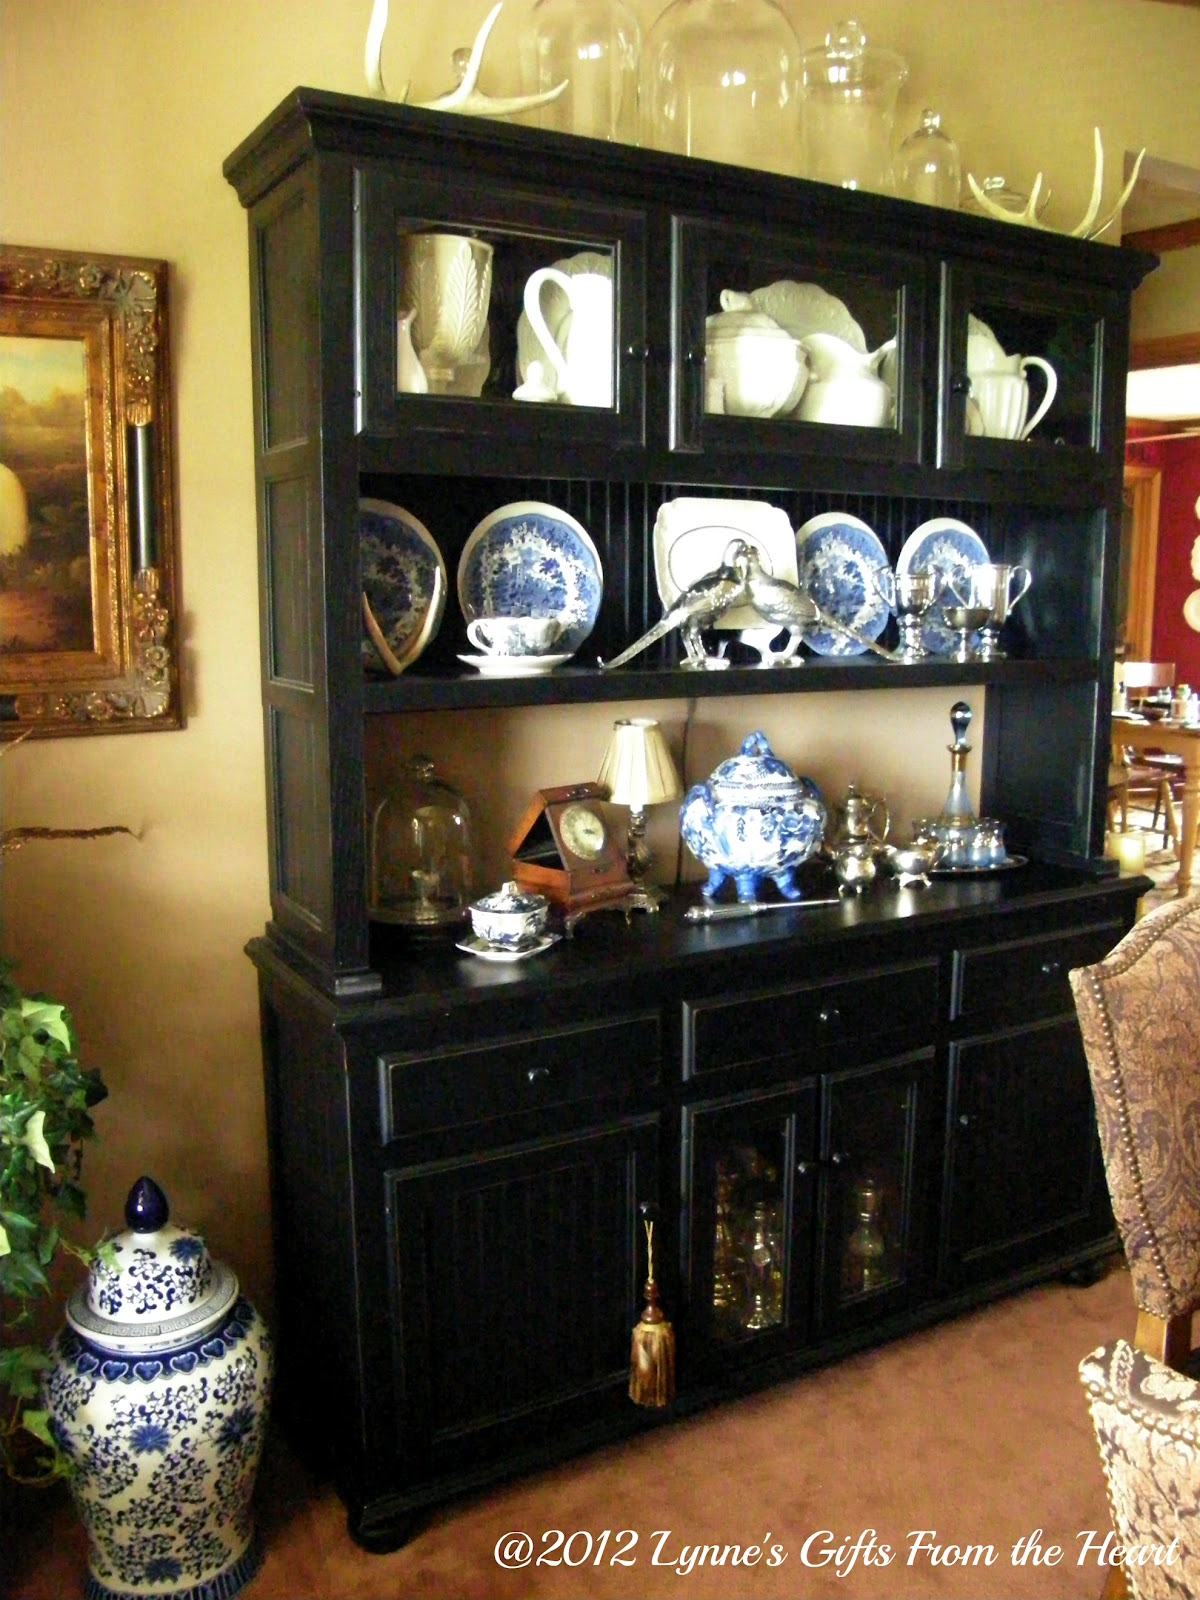 Lynne 39 s gifts from the heart the dining room hutch for A dining room hutch